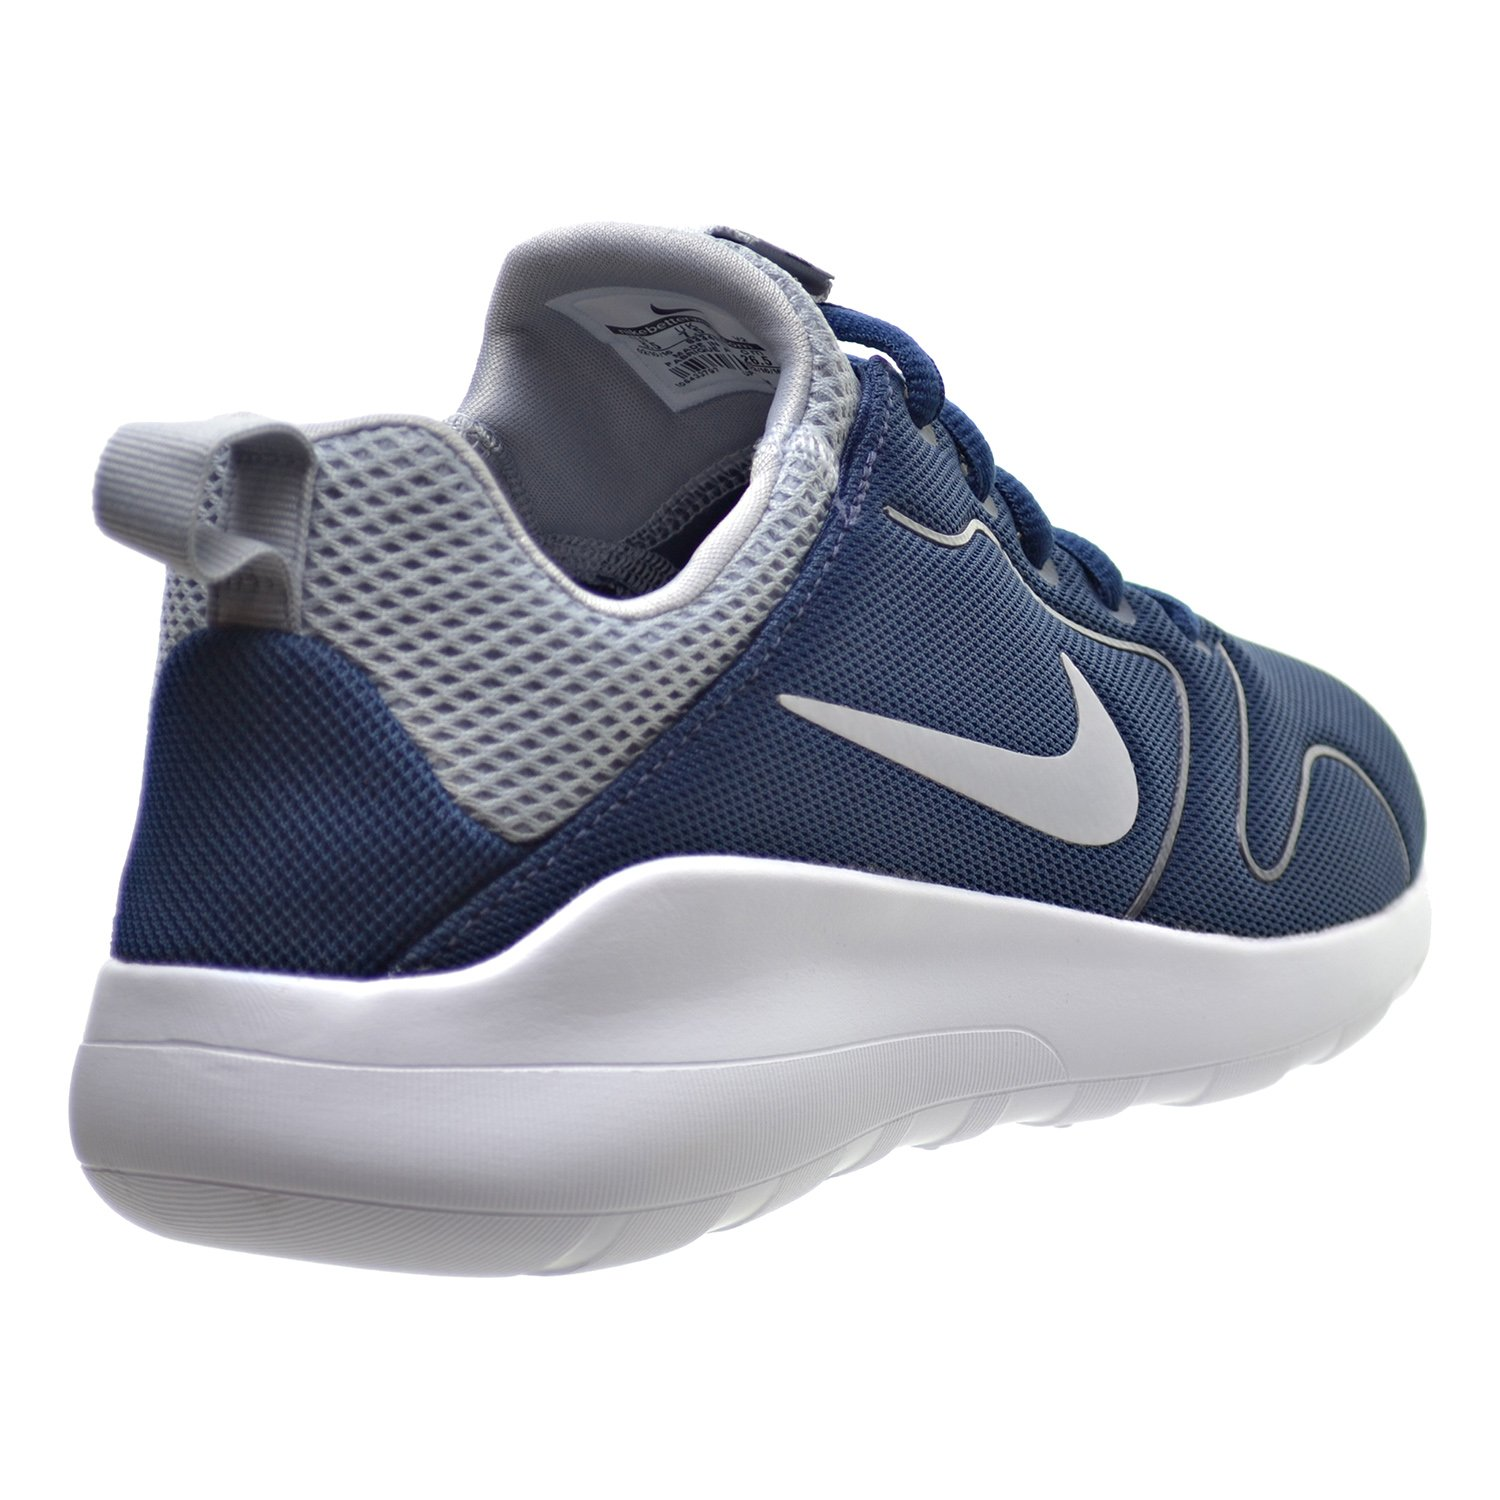 dbb9d10ff7089 ... best price nike kaishi 2.0 mens shoes midnight navy wolf grey white  833411 401 blue size